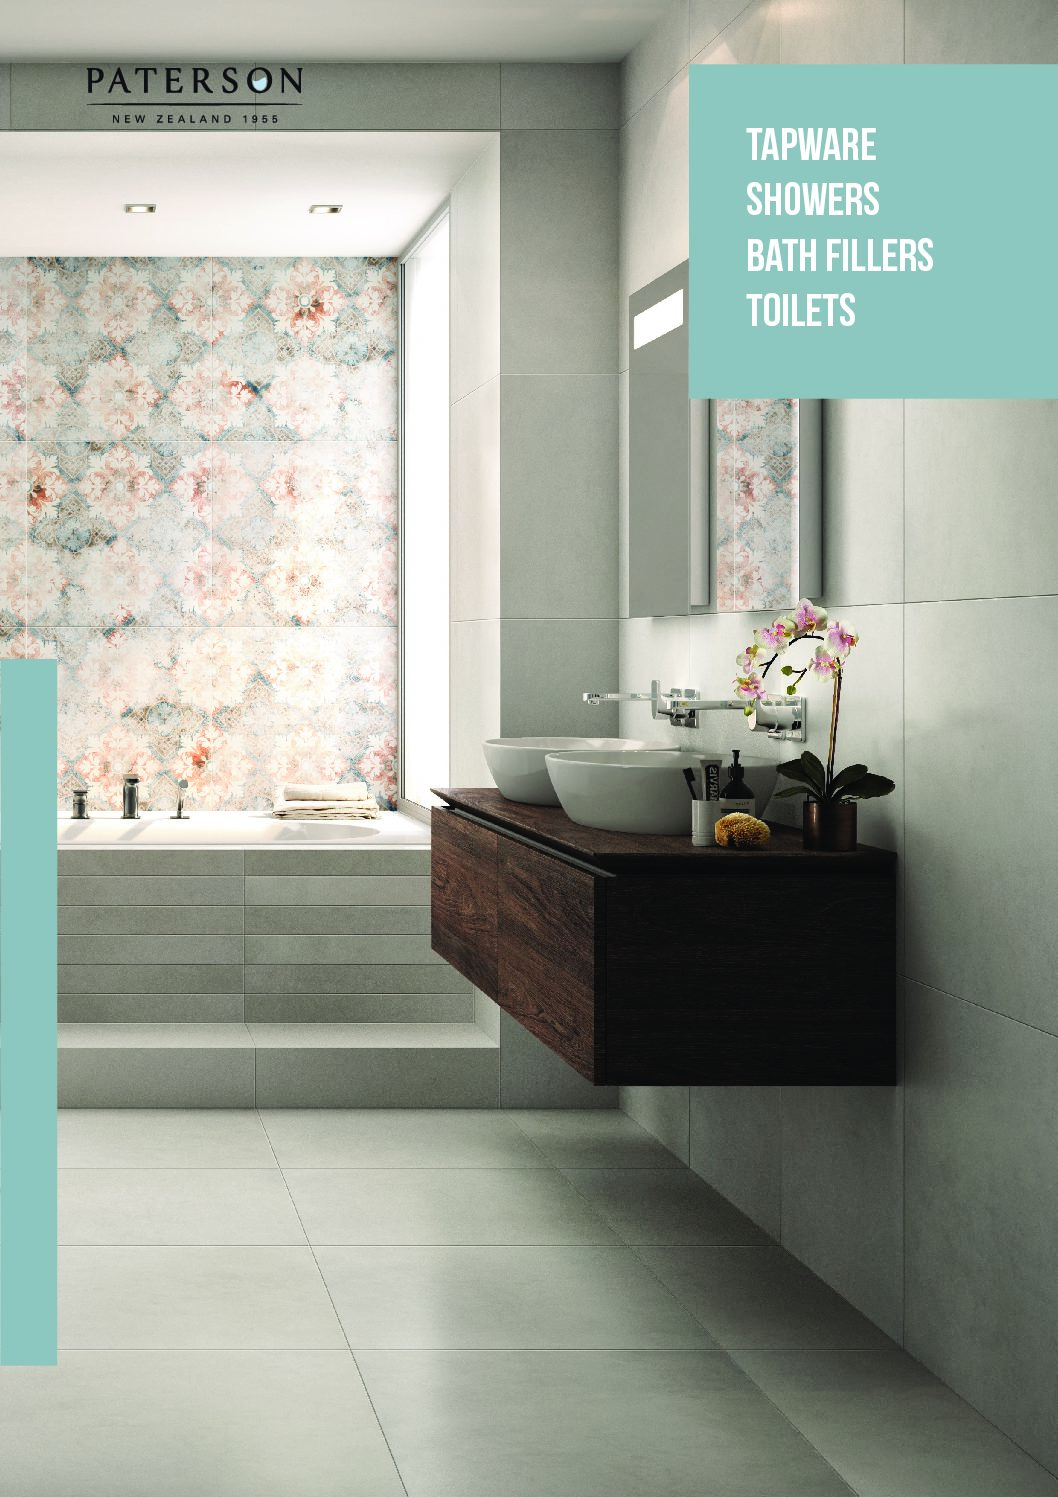 Paterson Tapware and Baths • - NZ Suppliers of bathroom and kitchen ...